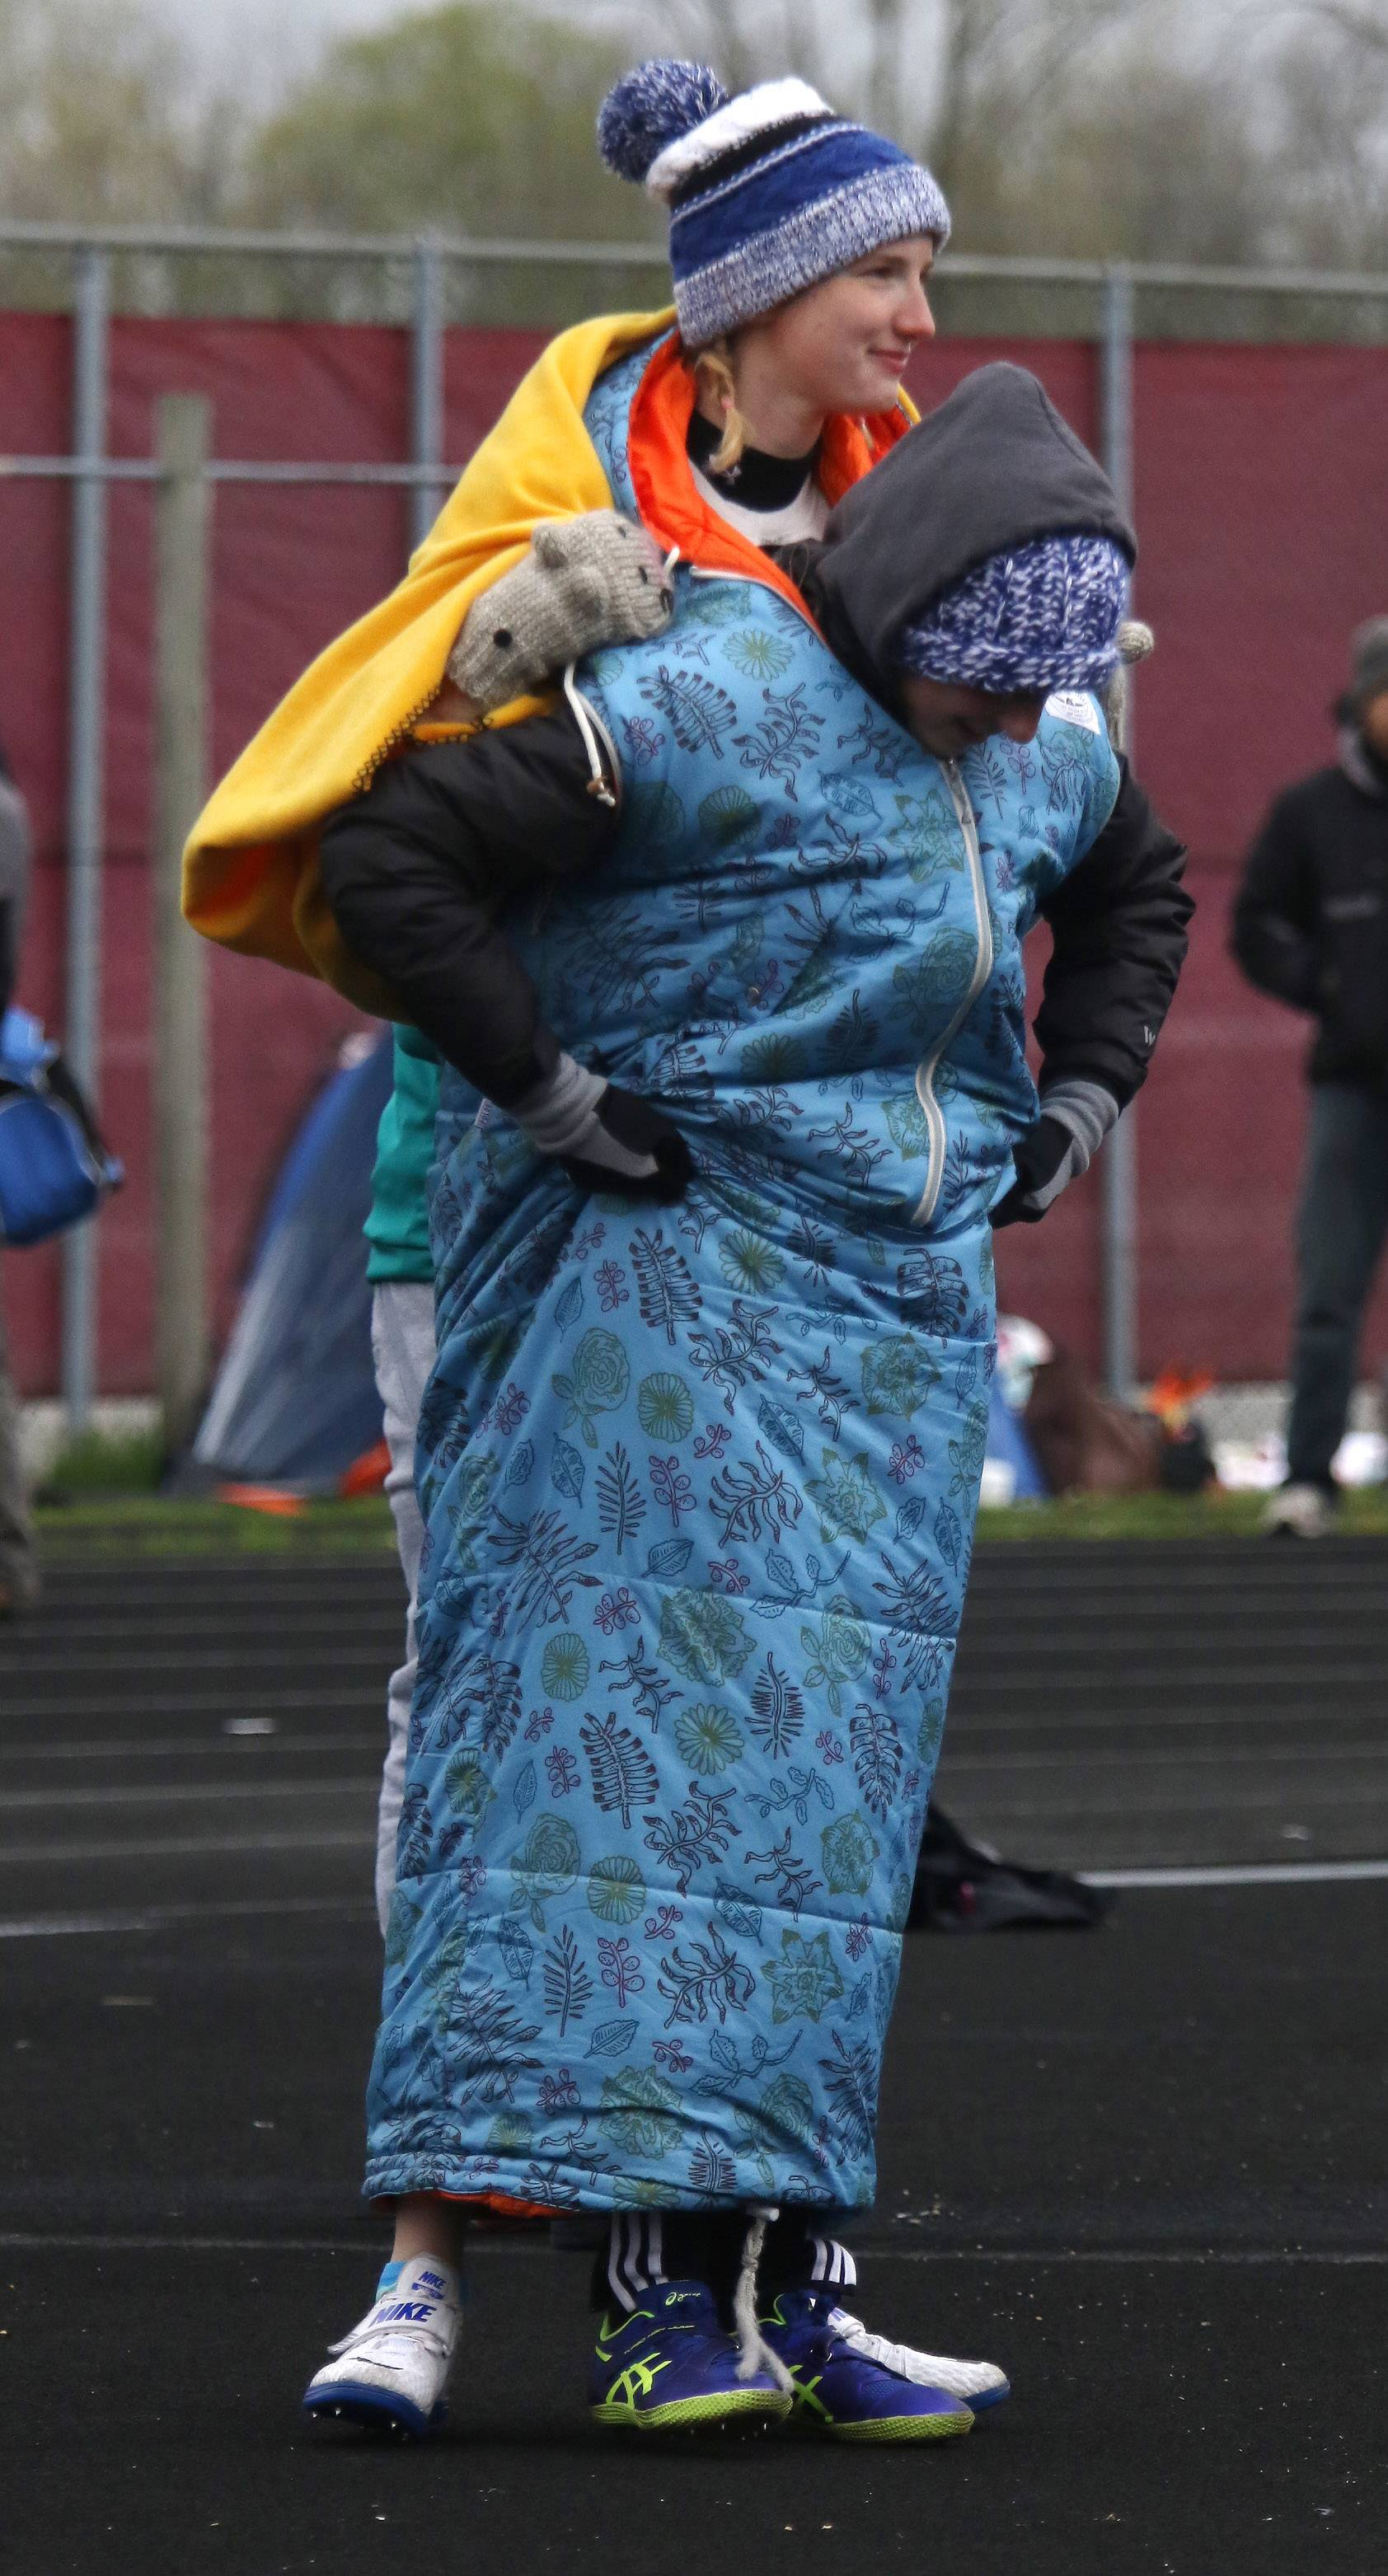 Lake Zurich athletes Kendall Kearnan, back, and Mackenzie Weider keep warm by walking around in the same sleeping bag during the Lake County girls track meet Thursday at Deerfield.